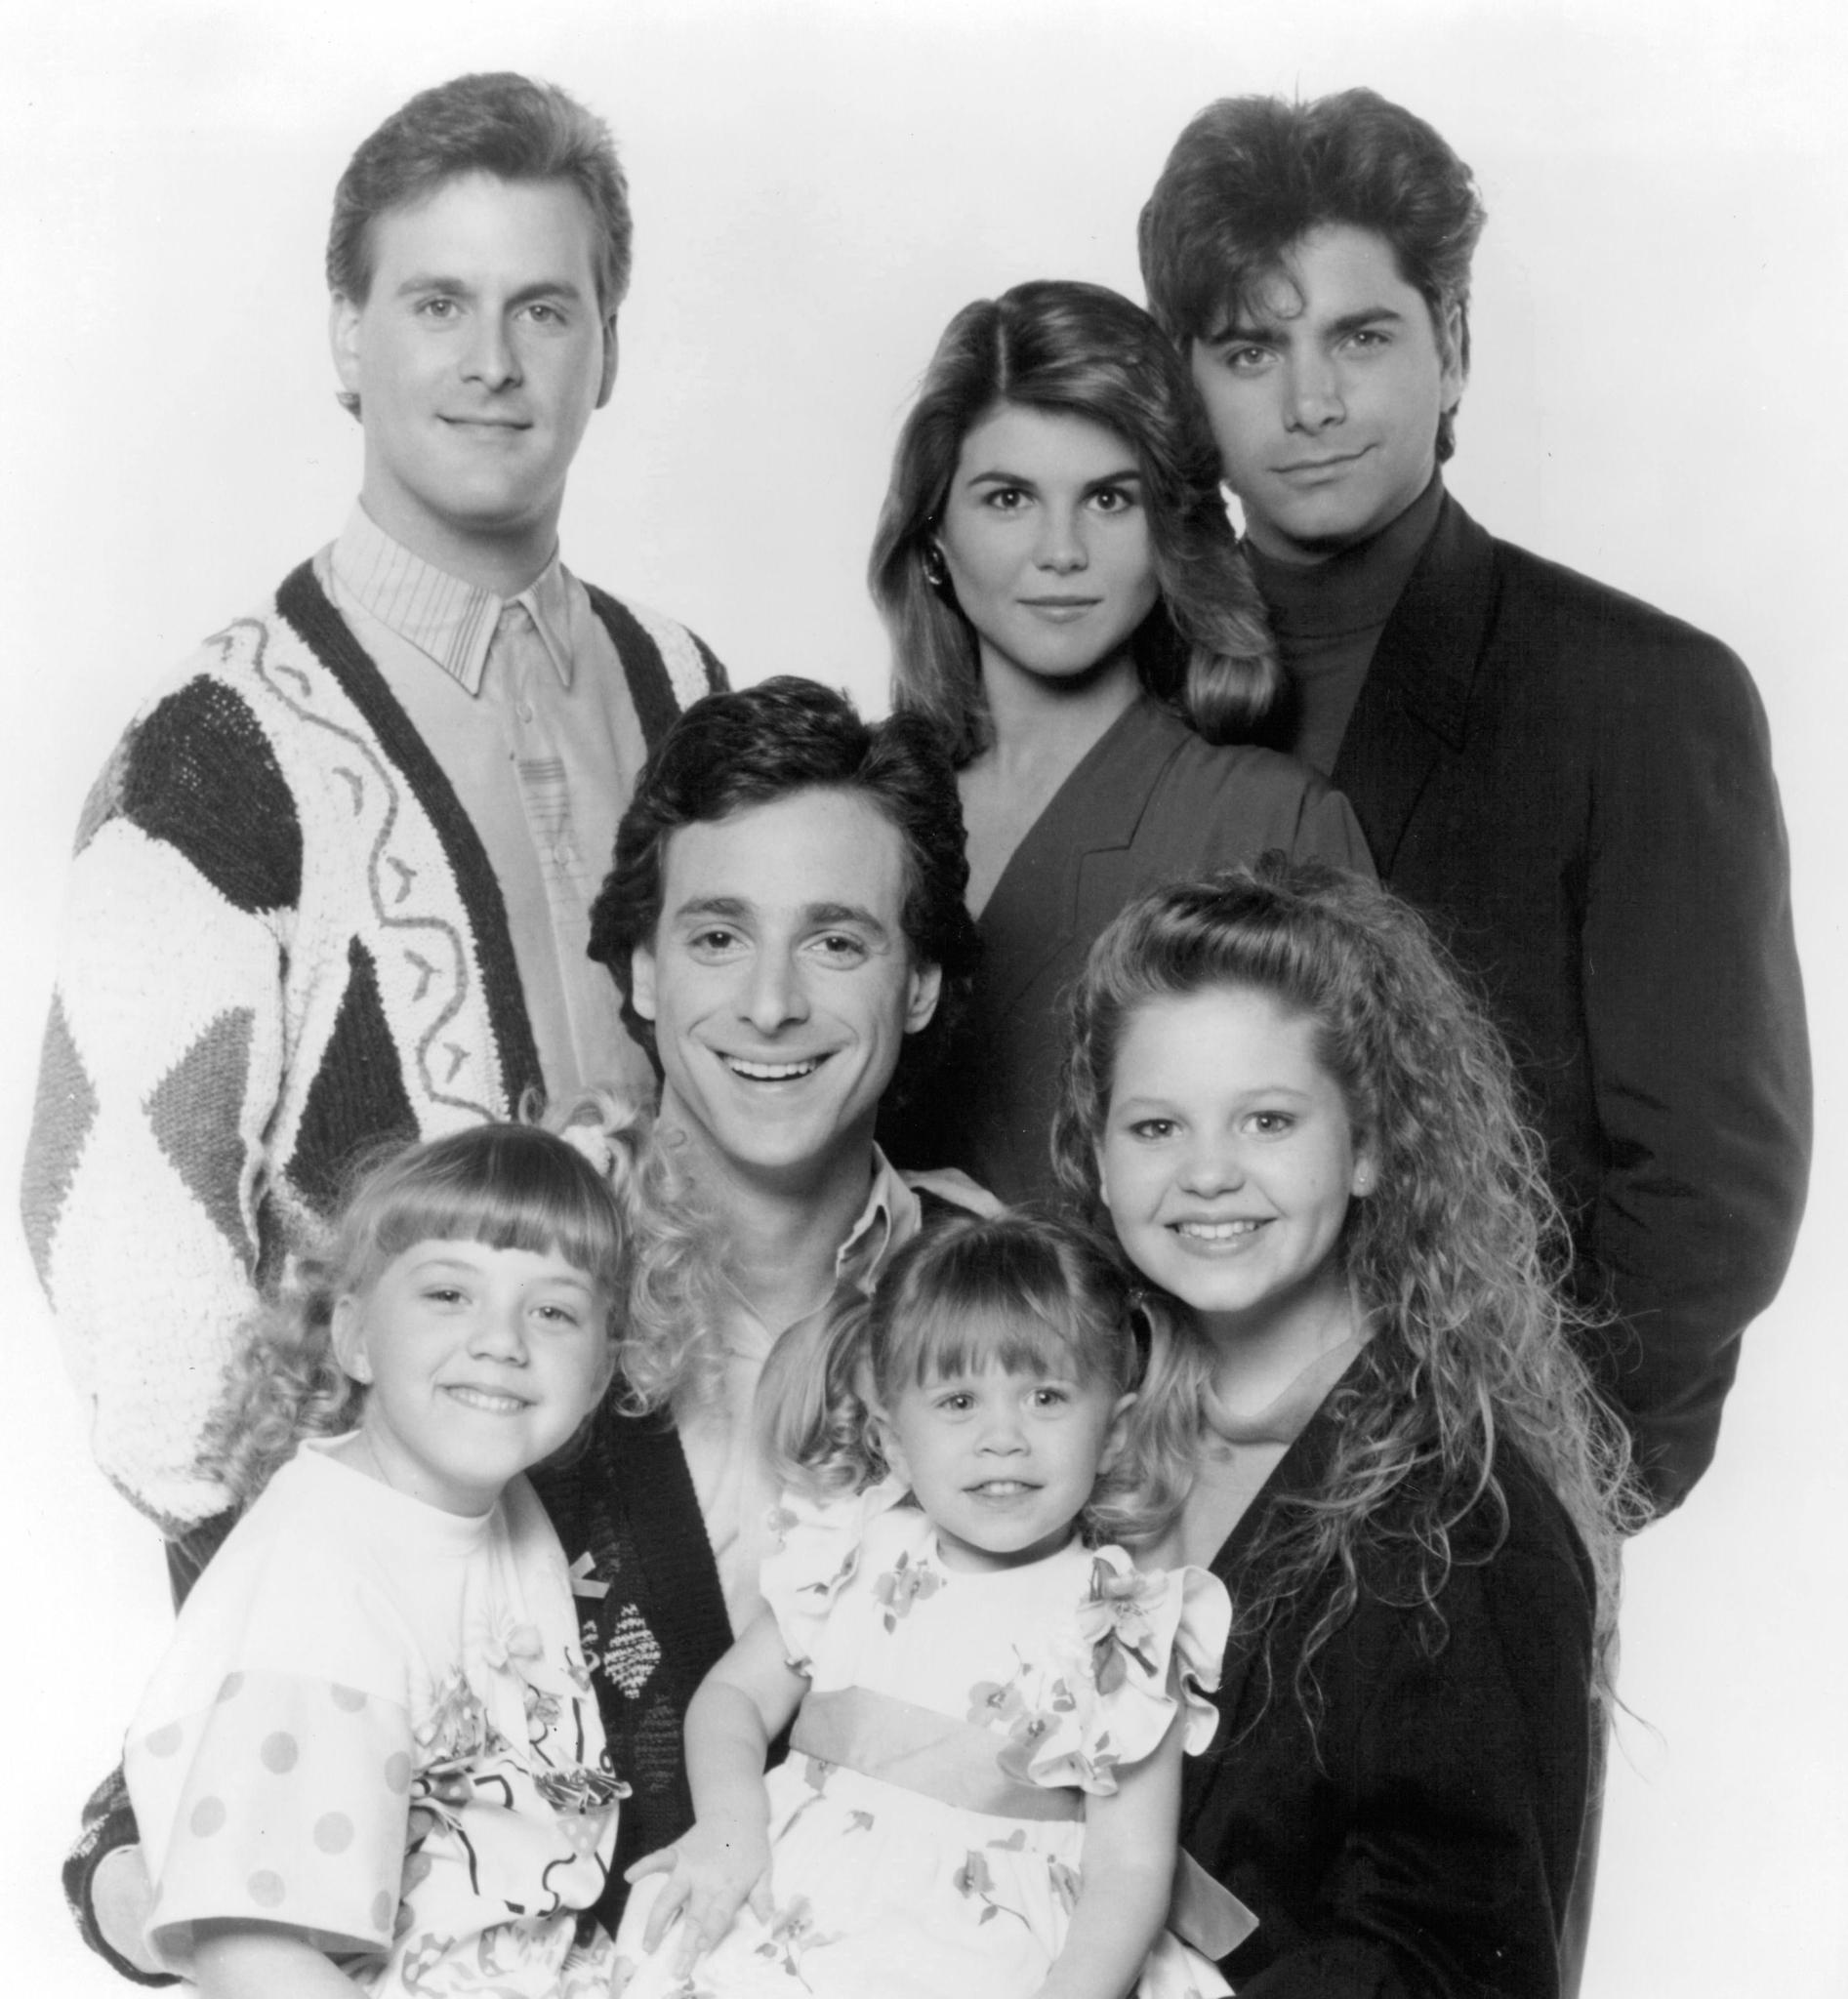 Full house cast jan 05 2013 19 07 07 picture gallery for Fully house